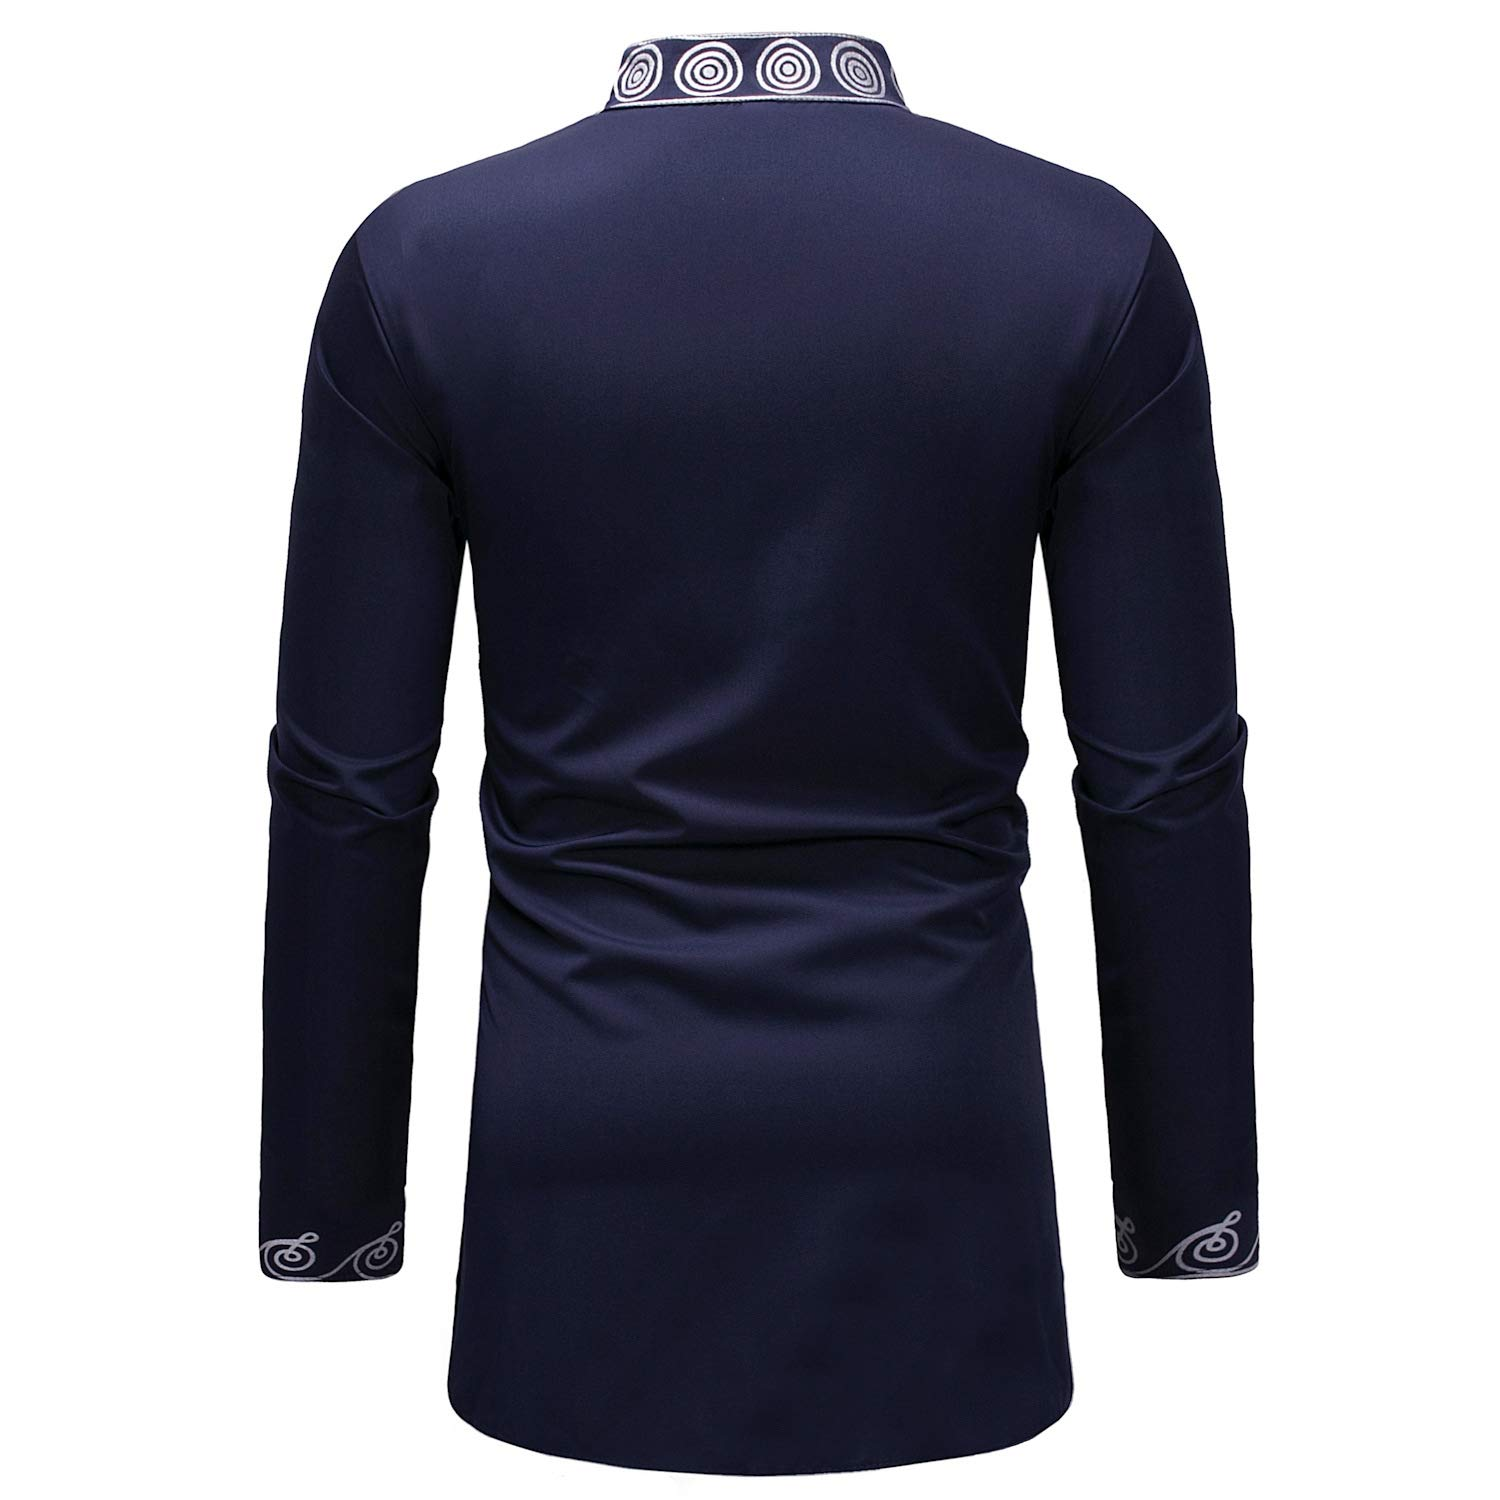 Tootless-Men African Long-Sleeve Mid-Long Fashion Relaxed-Fit Shirt Top